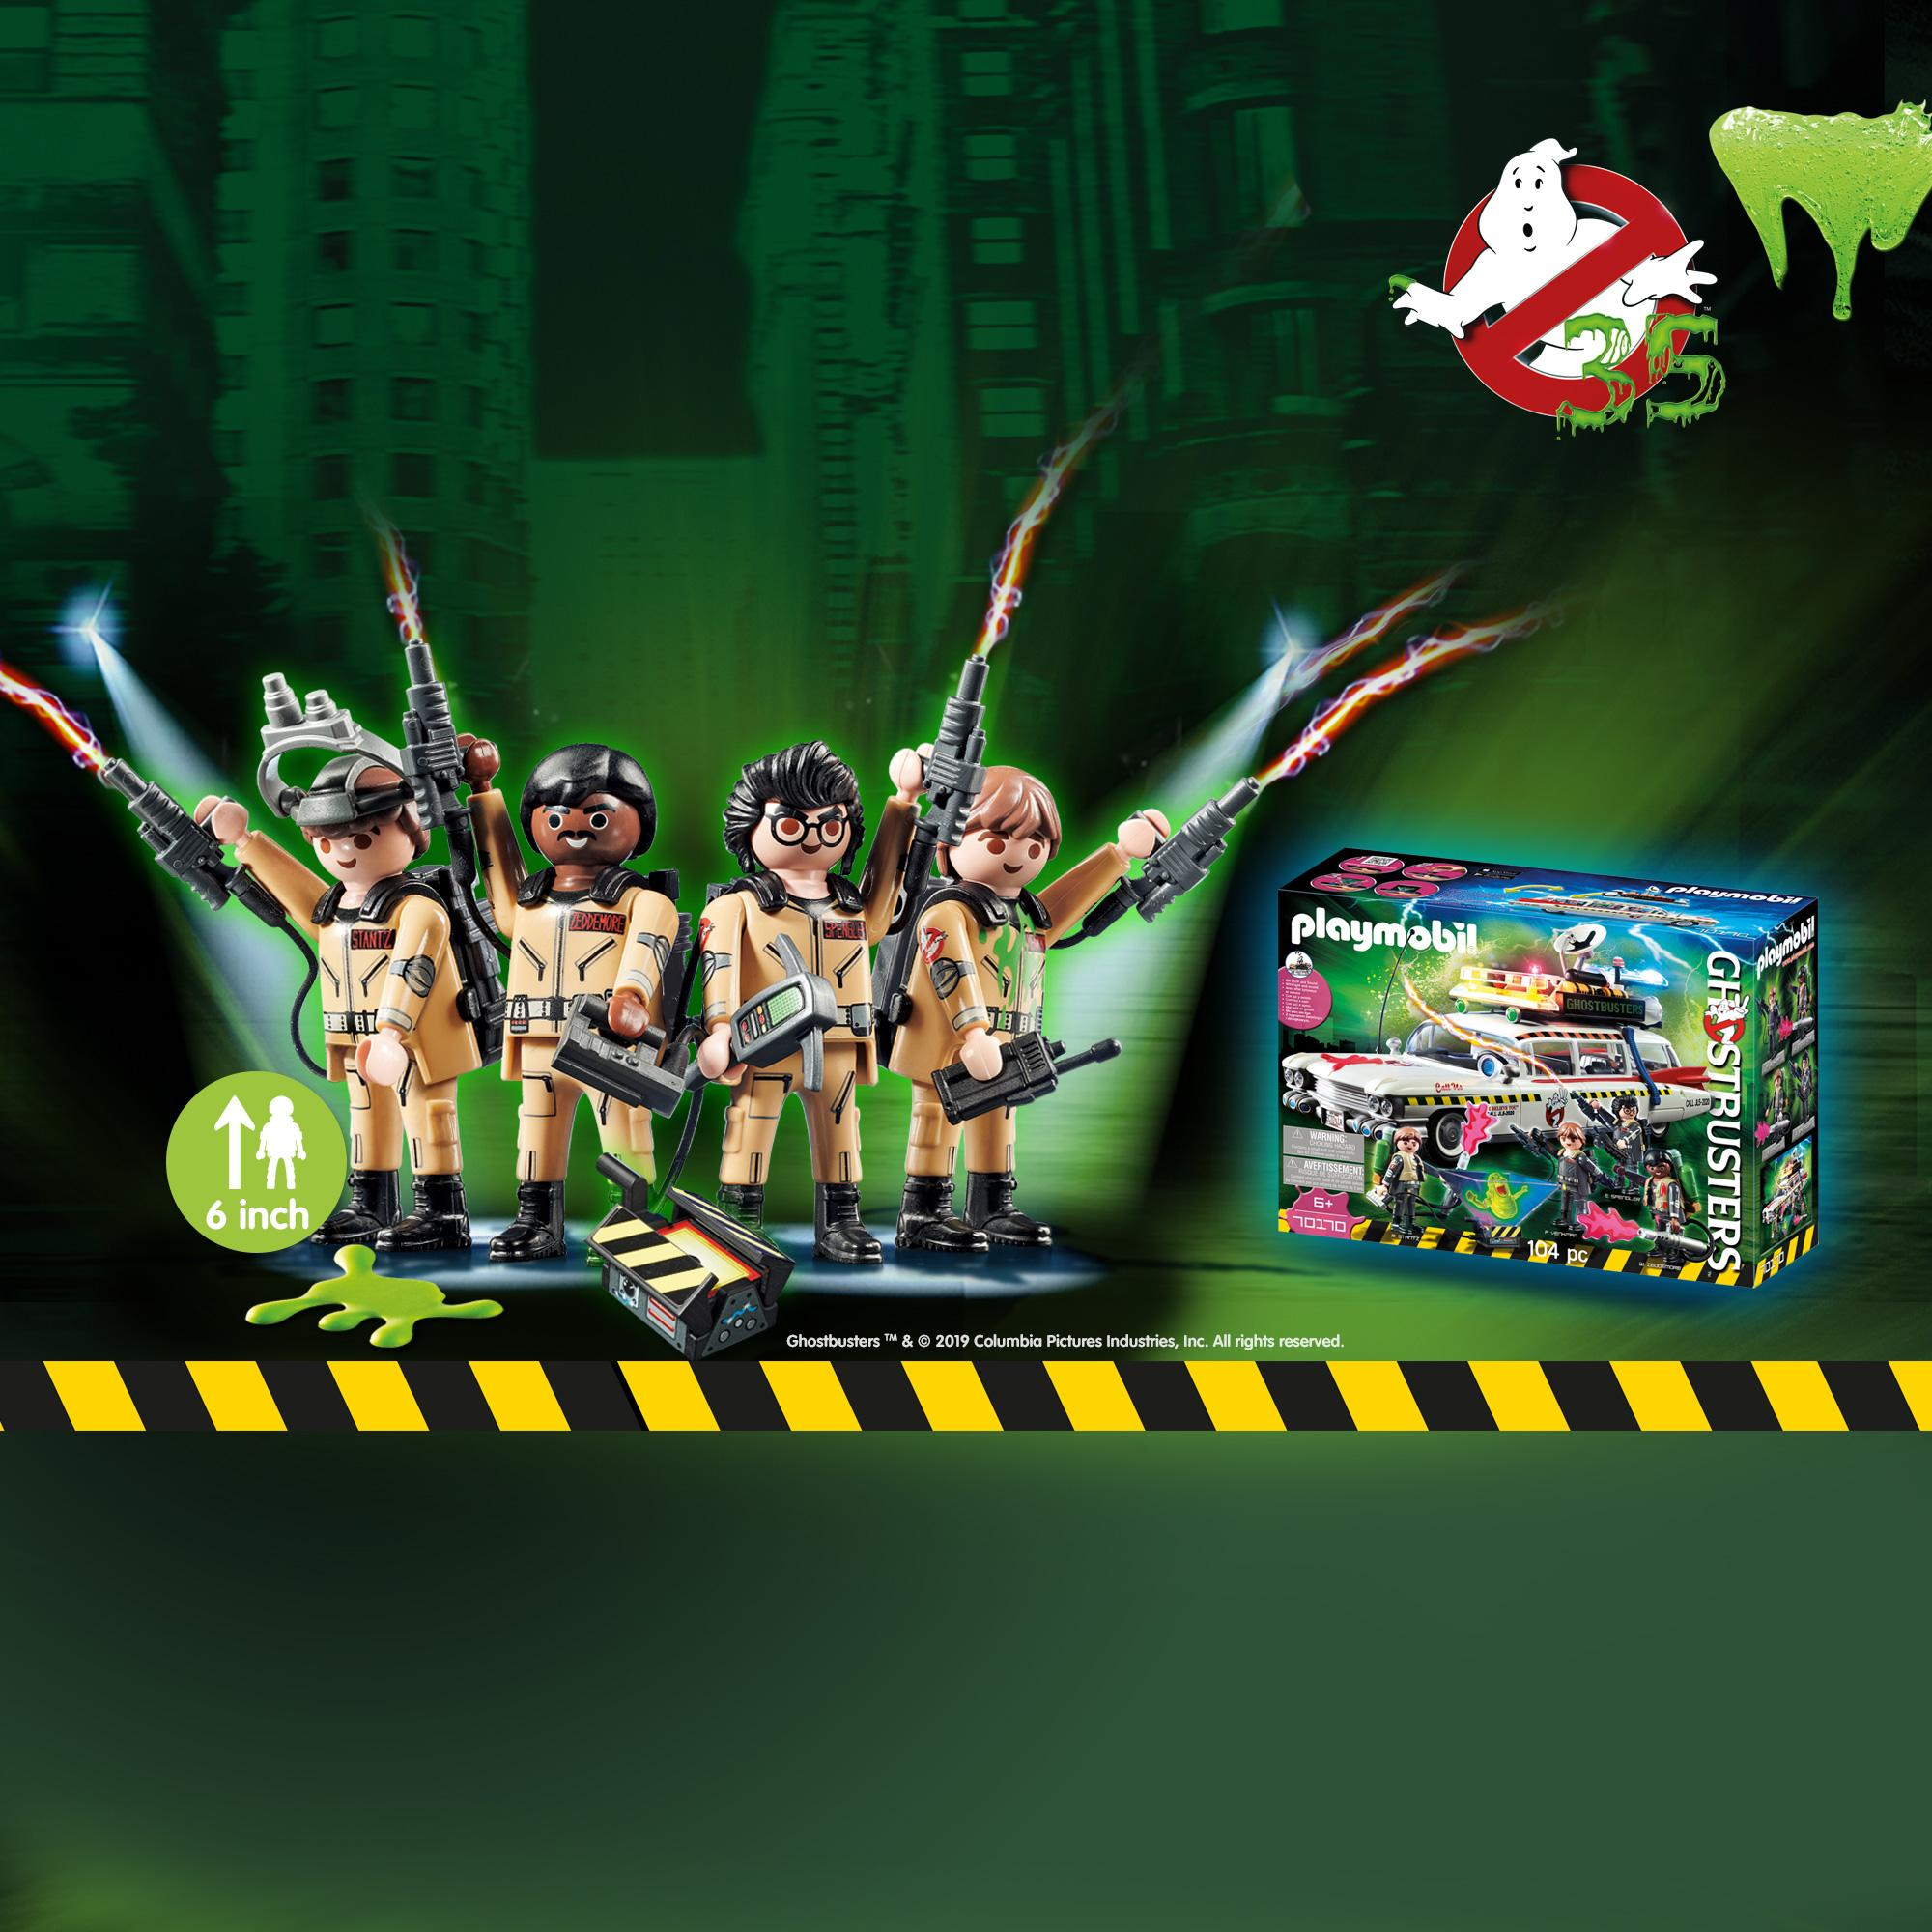 SHOP_SONY_GHOSTBUSTERS_2019_US_2X2